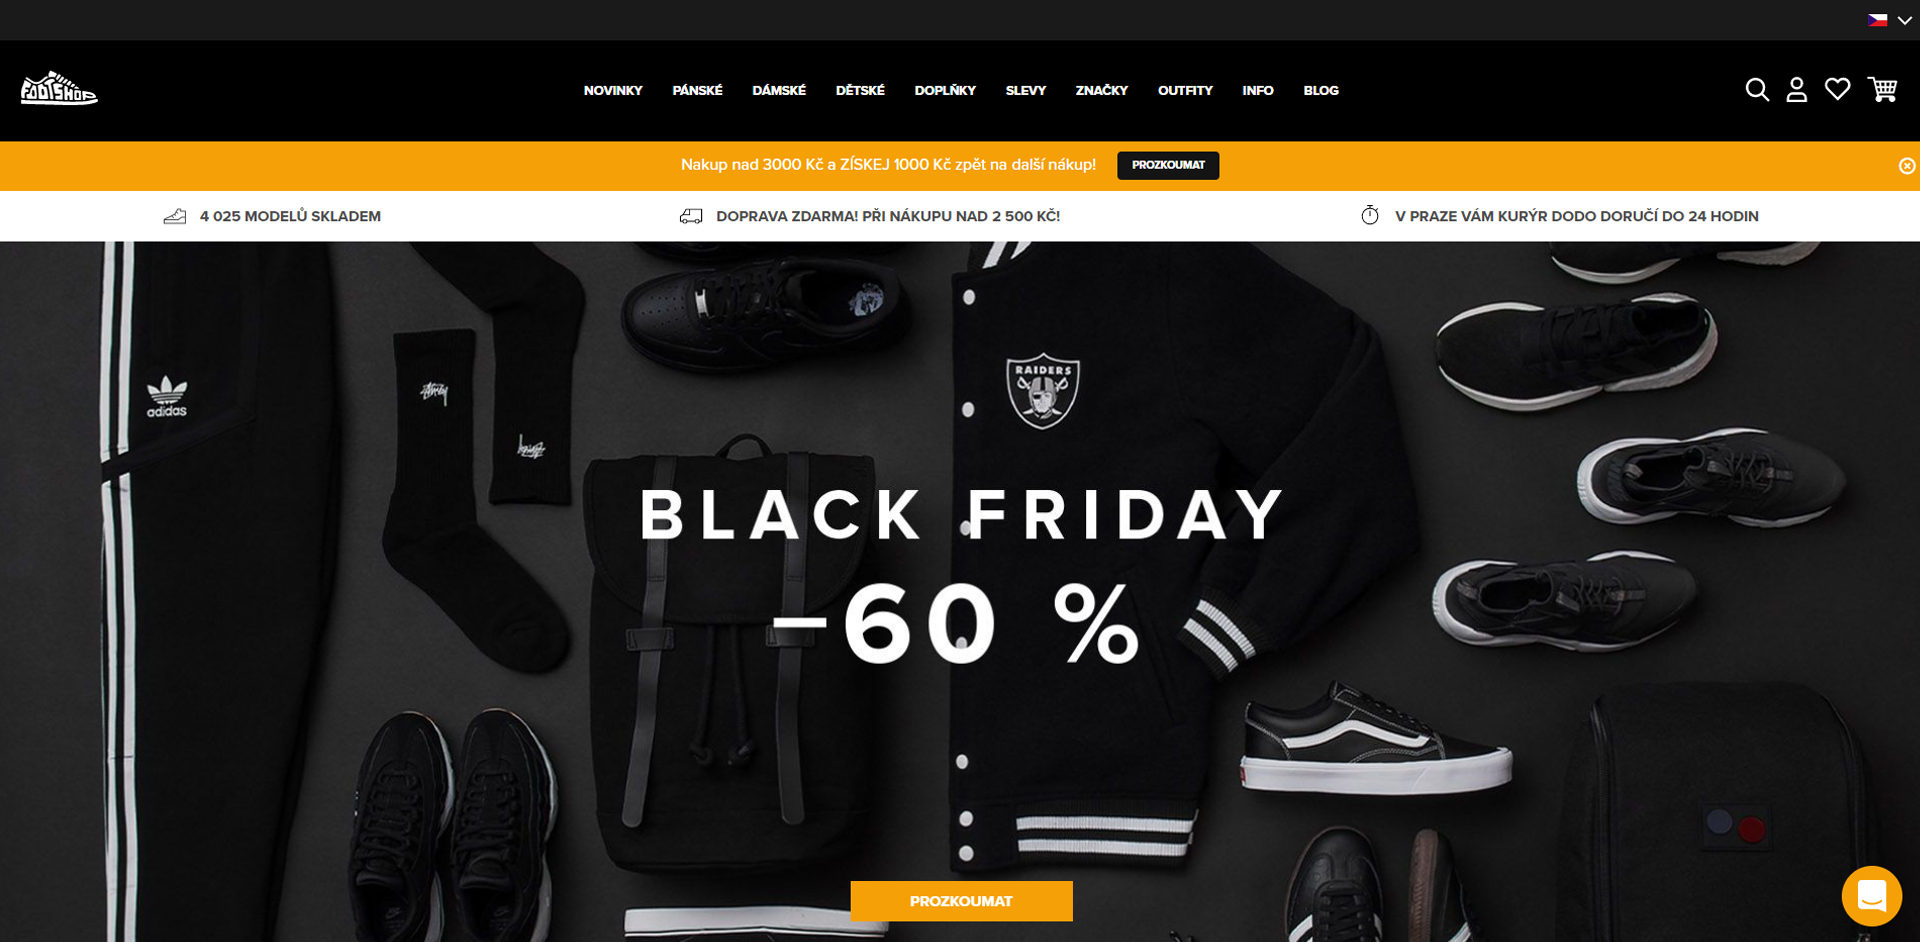 ecommerce website home page after redesign